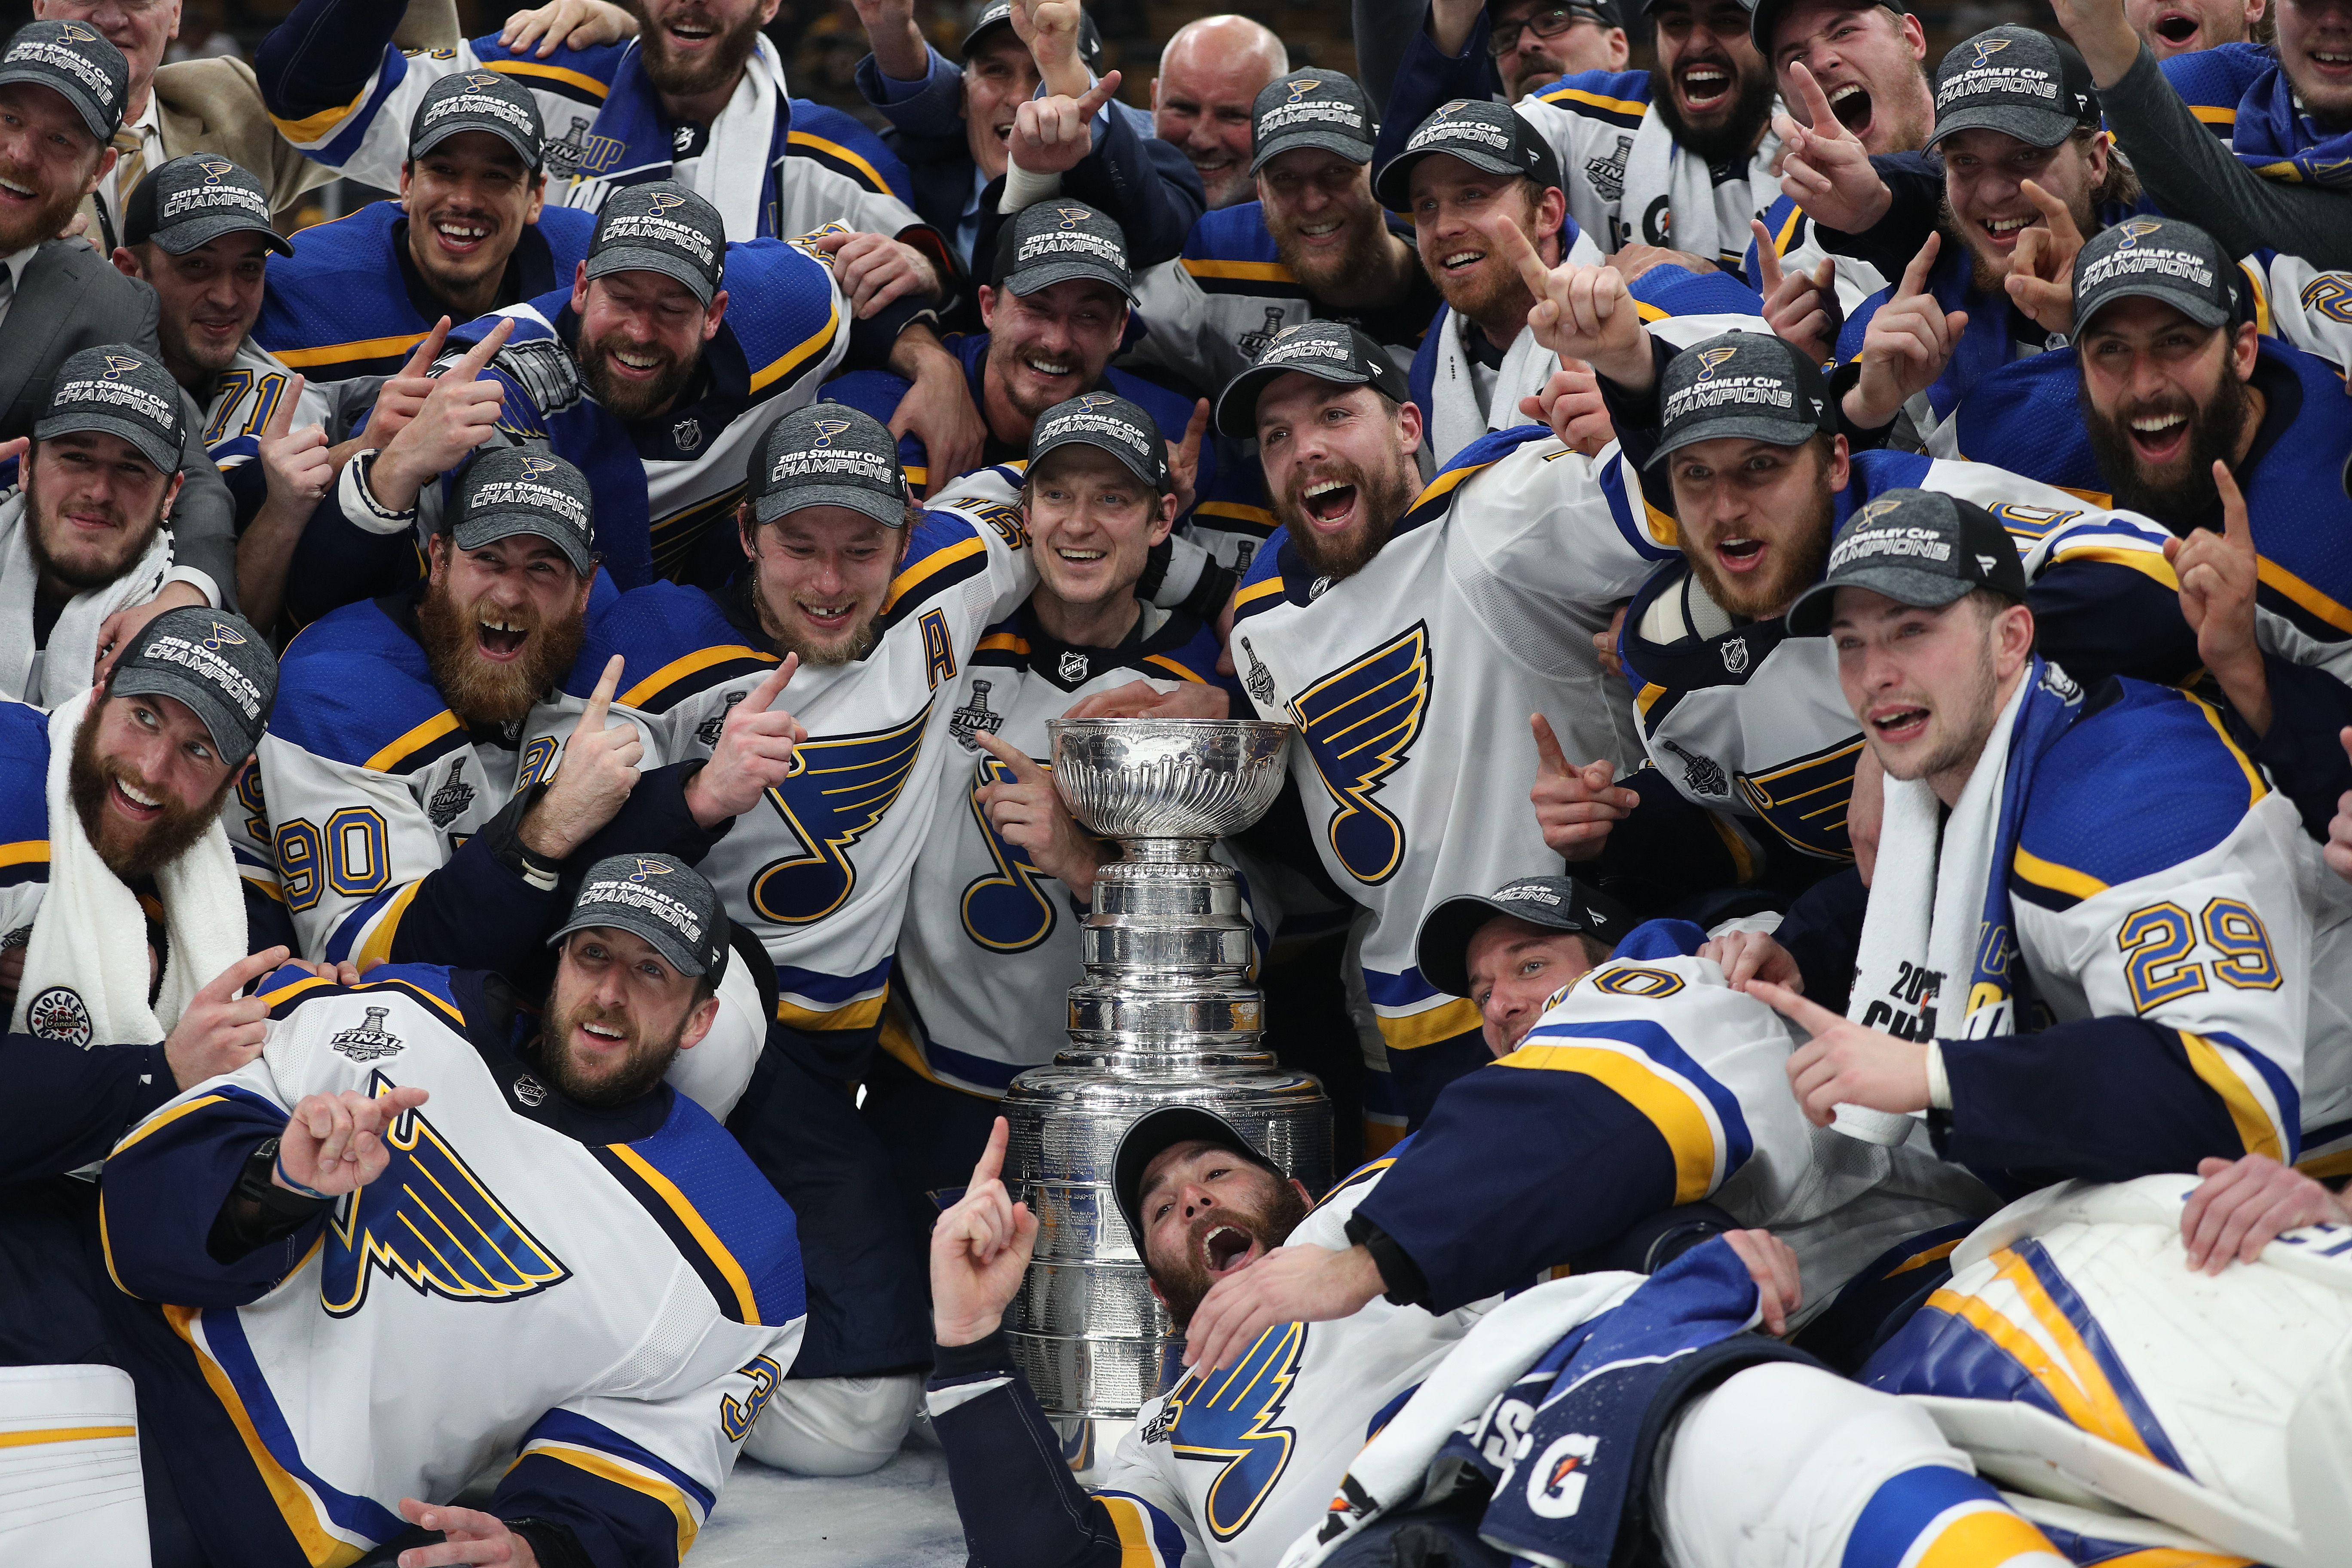 Blues players with the Cup